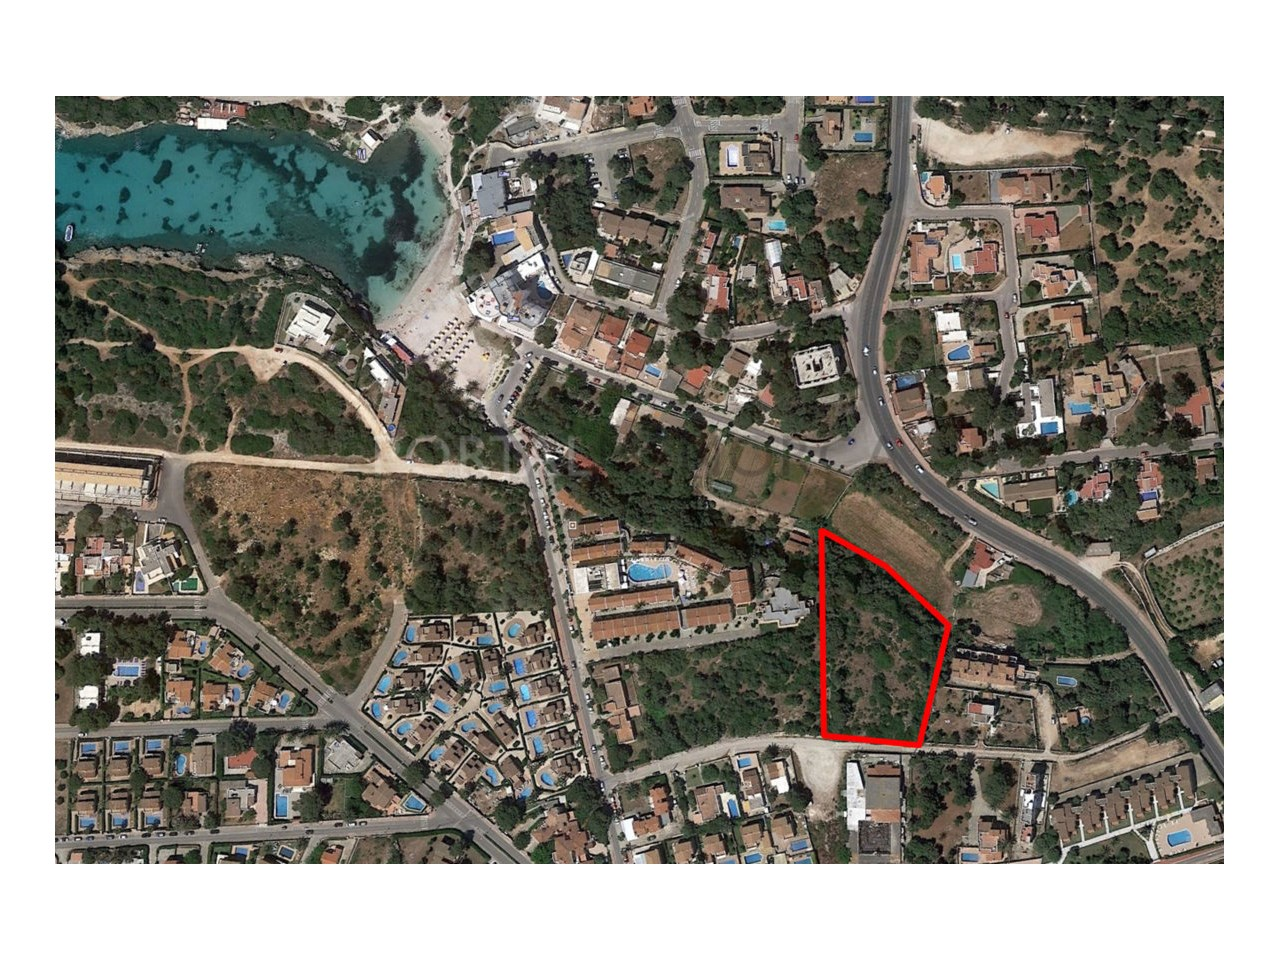 Plot for sale in Cala Blanca, Ciutadella promotion of 6 homes -Situation